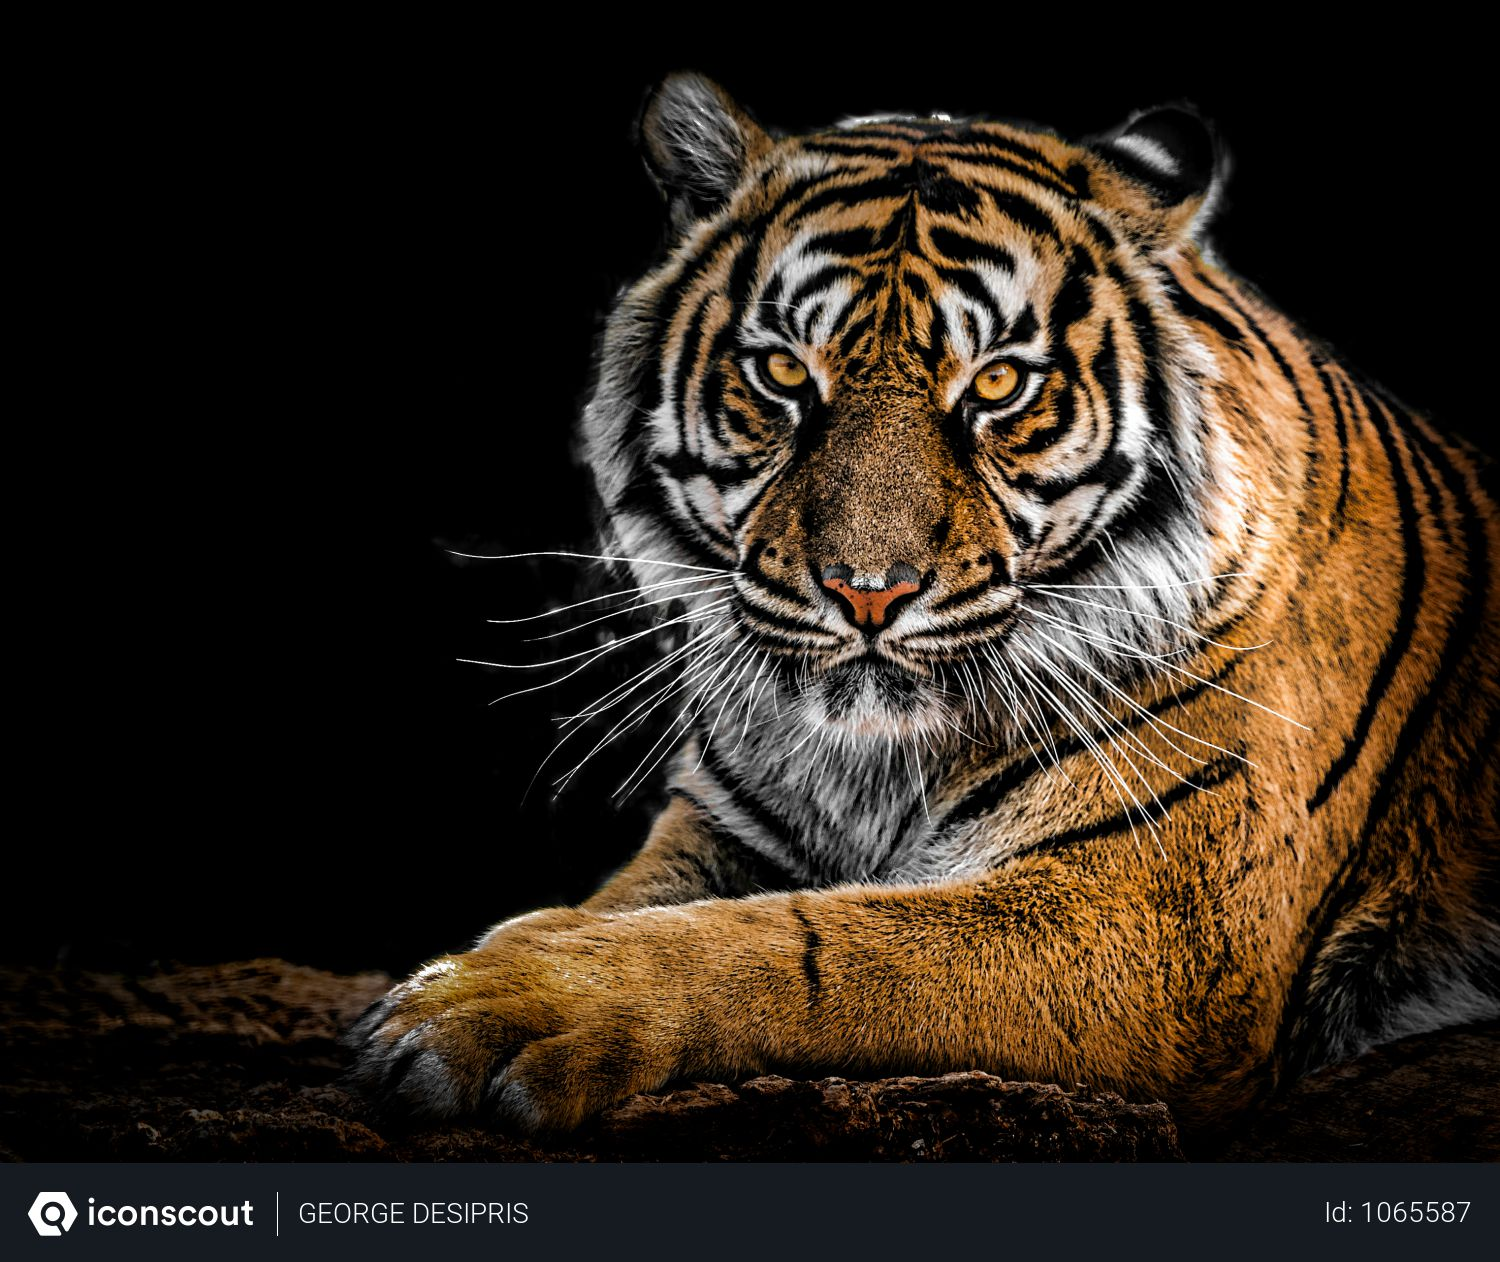 Free Close-Up Photography Of Tiger Photo download in PNG